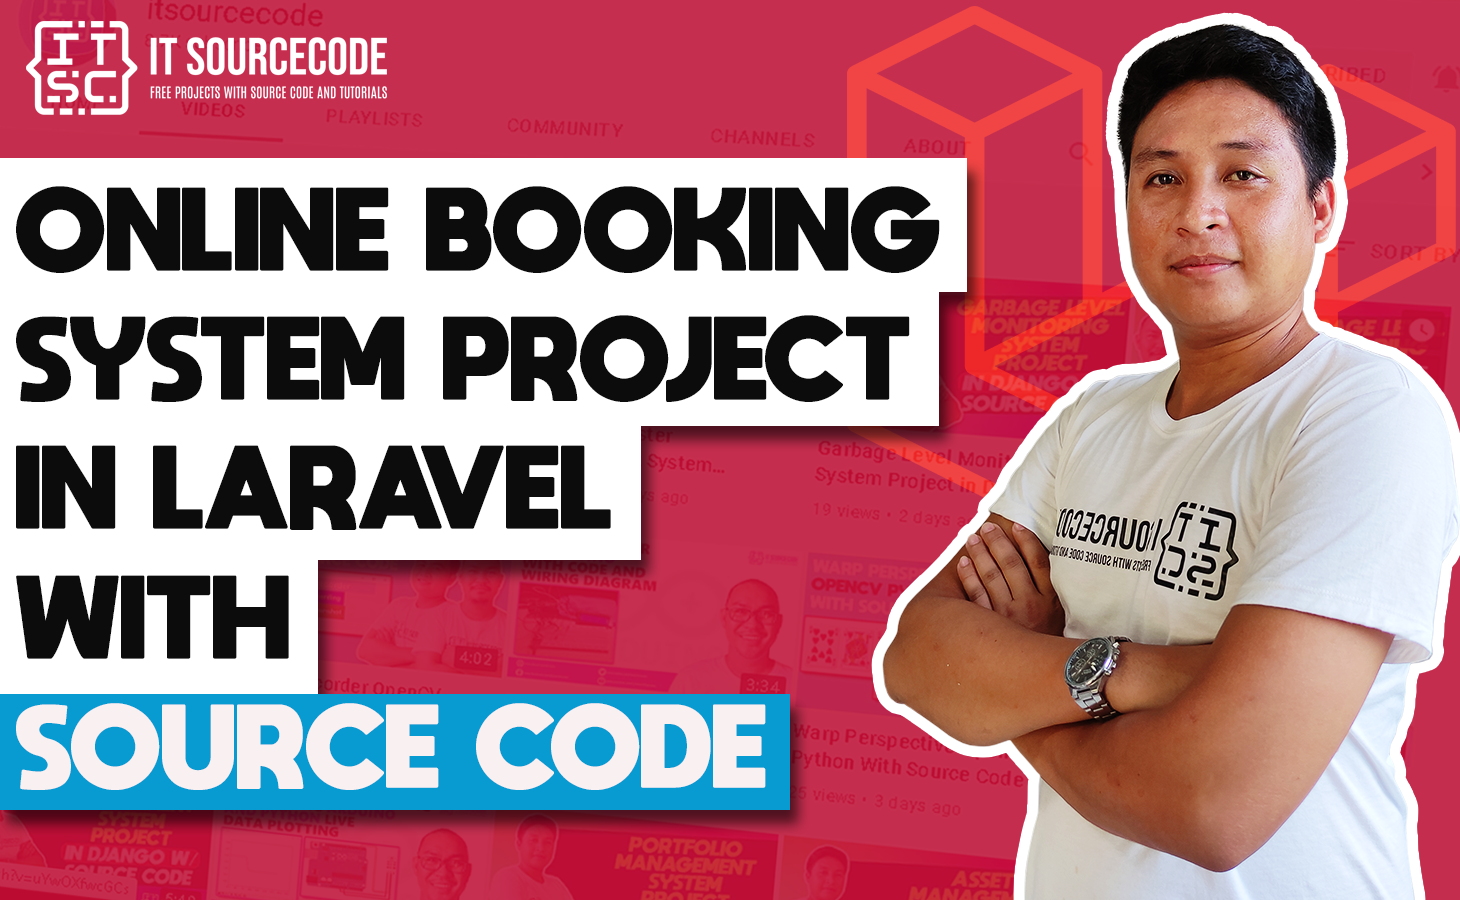 Online Booking System Project in Laravel with Source Code